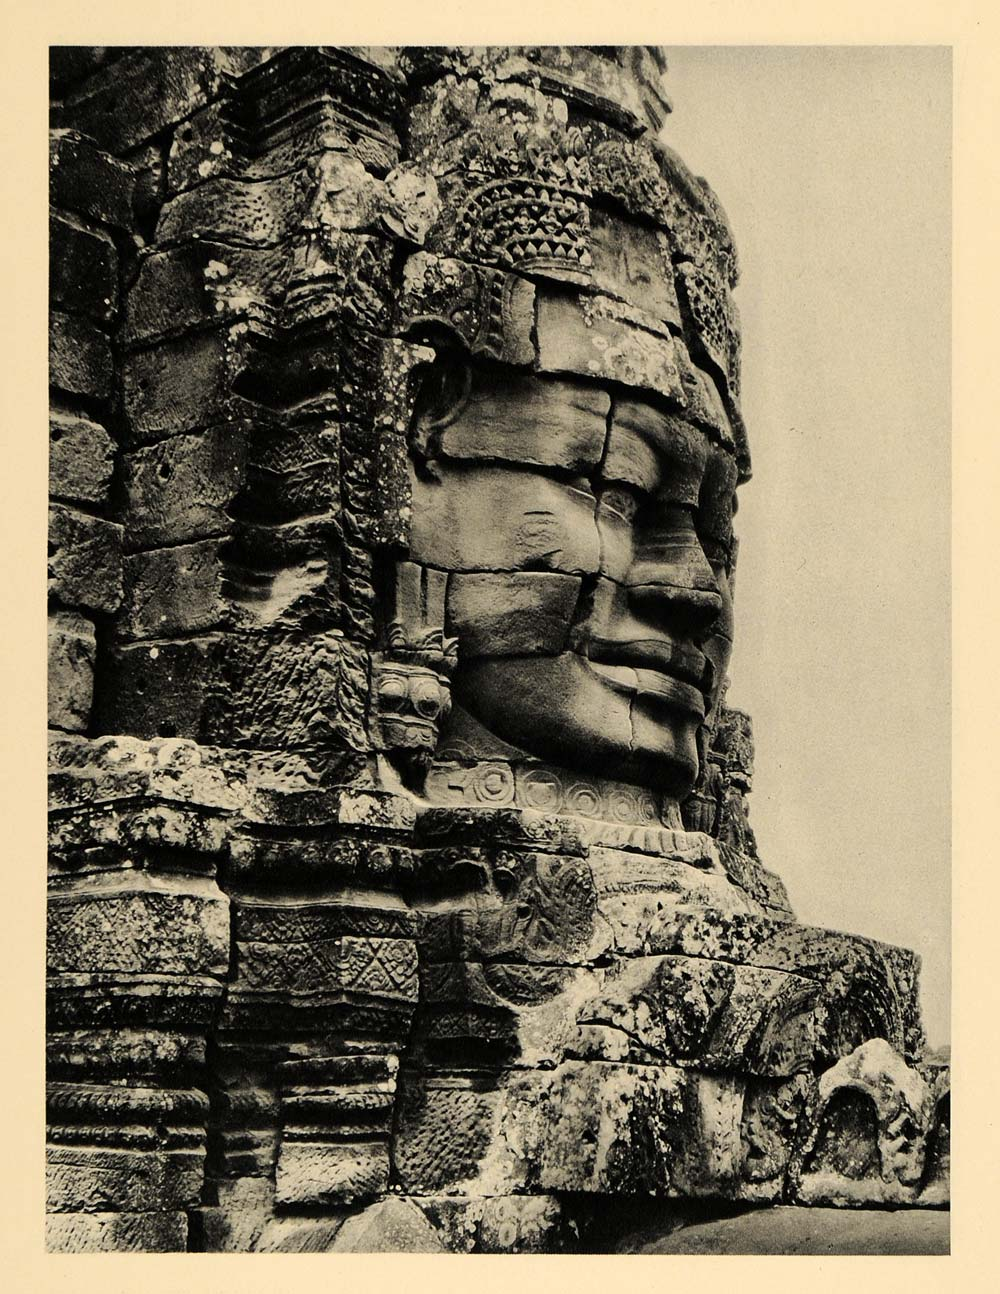 1929 Photogravure Angkor Thom Cambodia Bayon Temple Sculpture Face Archaeology